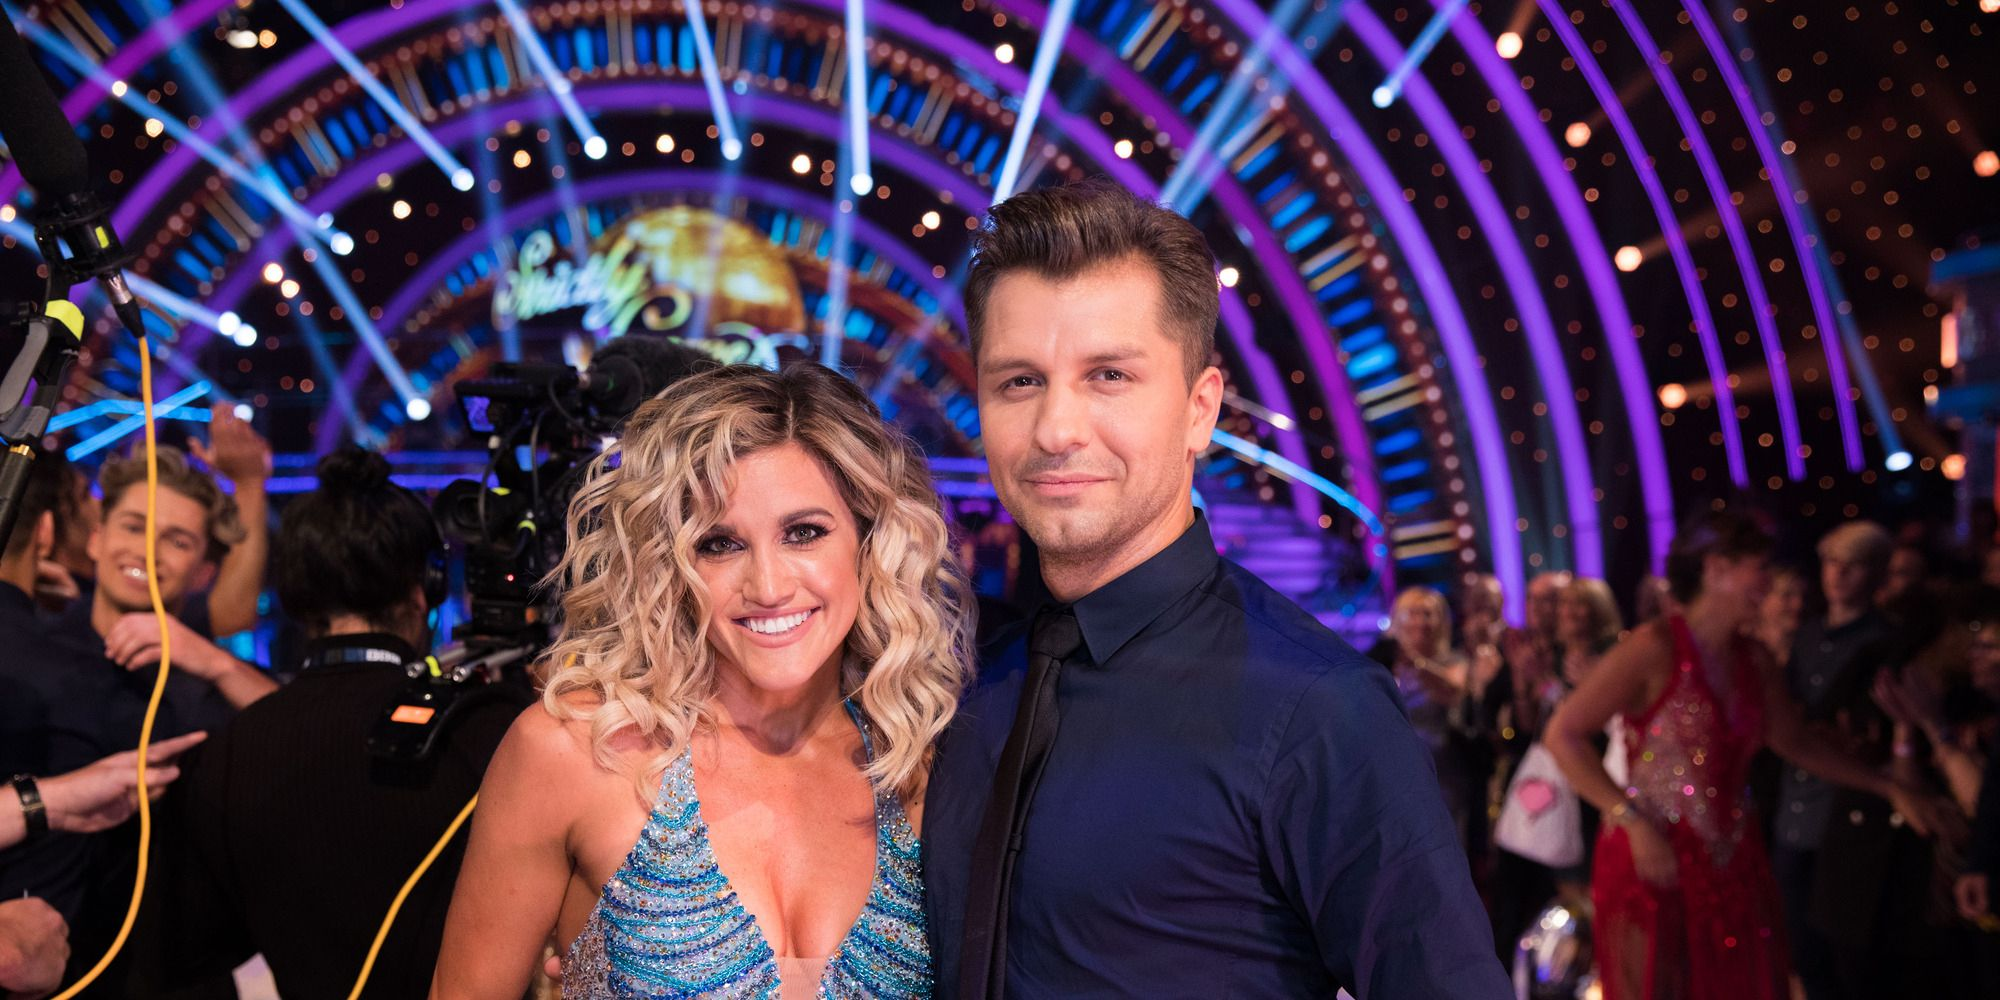 Strictly Come Dancing 2018 couples: Ashley Roberts and Pasha Kovalev